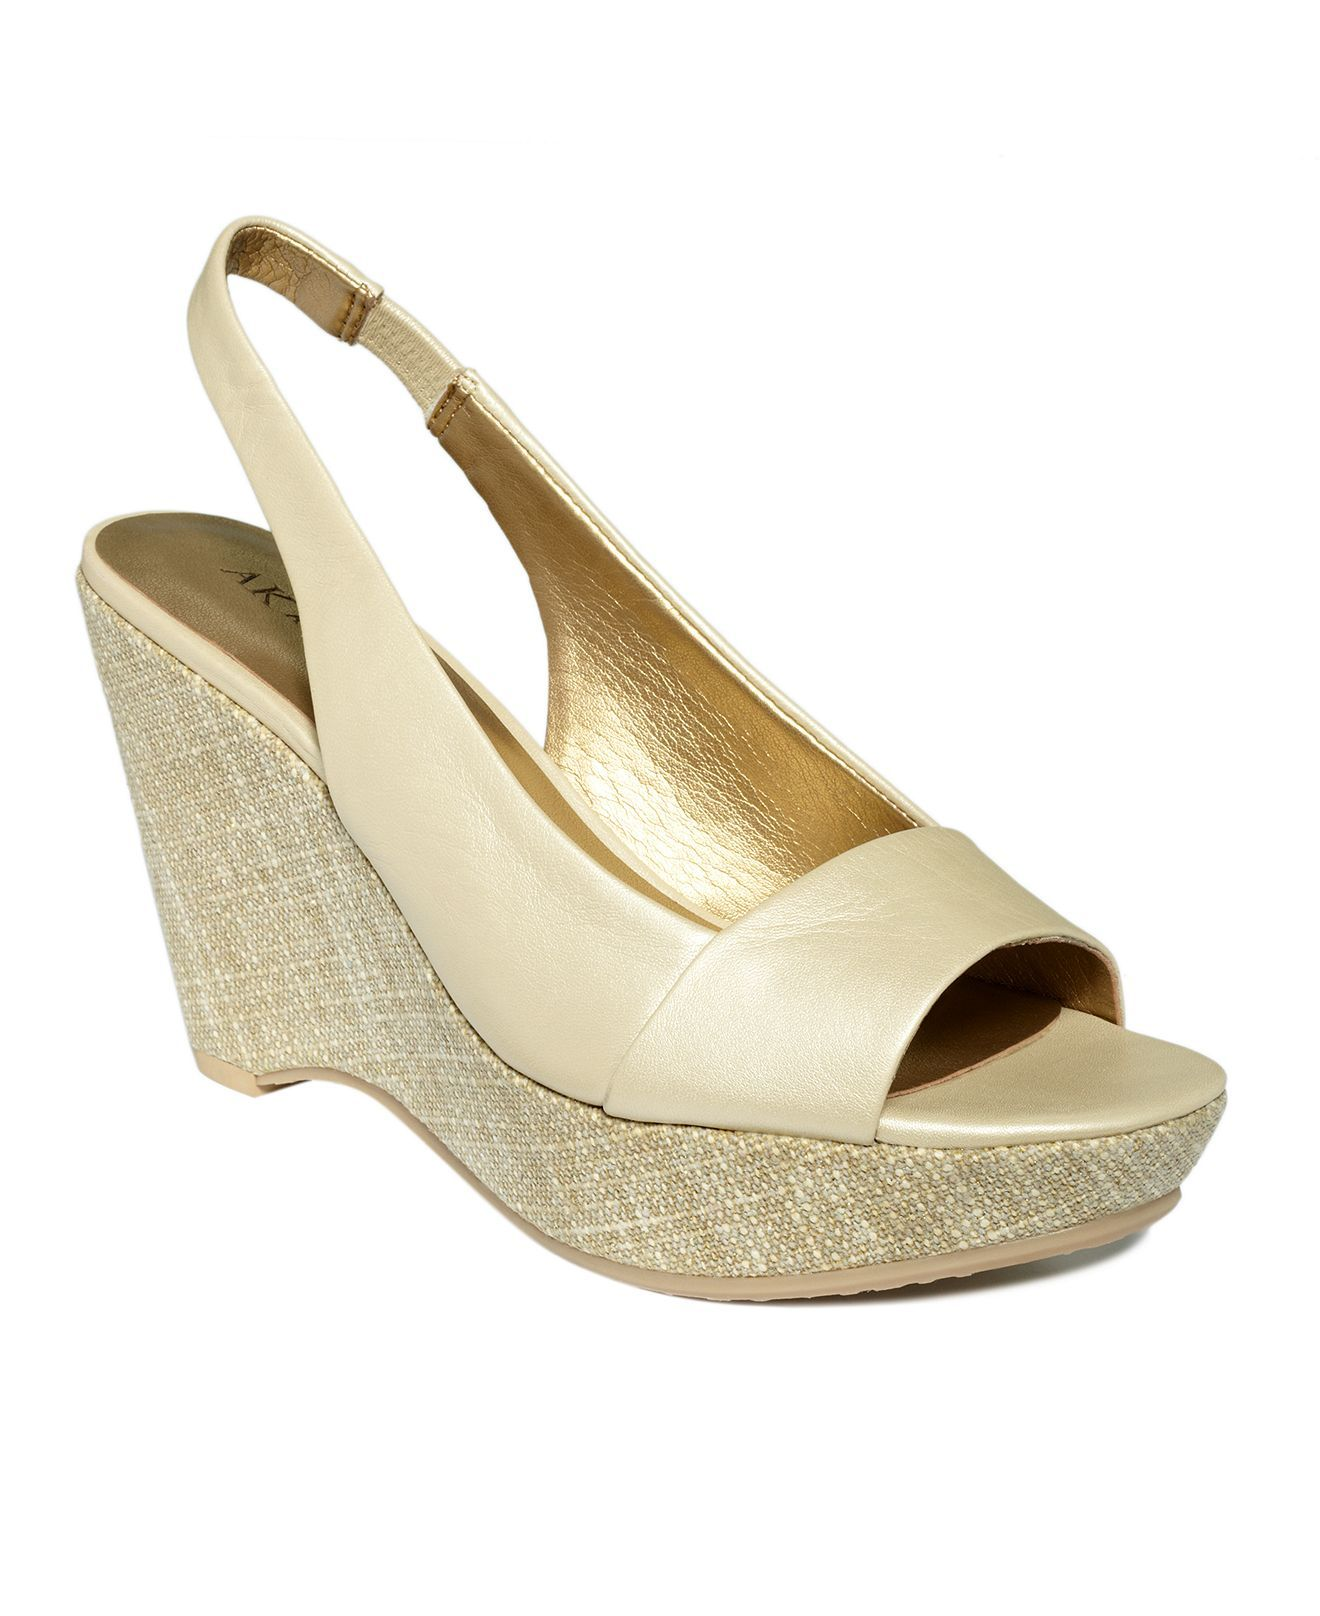 d4ebe670d1c AK Fortuna Wedge   My Style   Wedge sandals, Shoes, Wedges